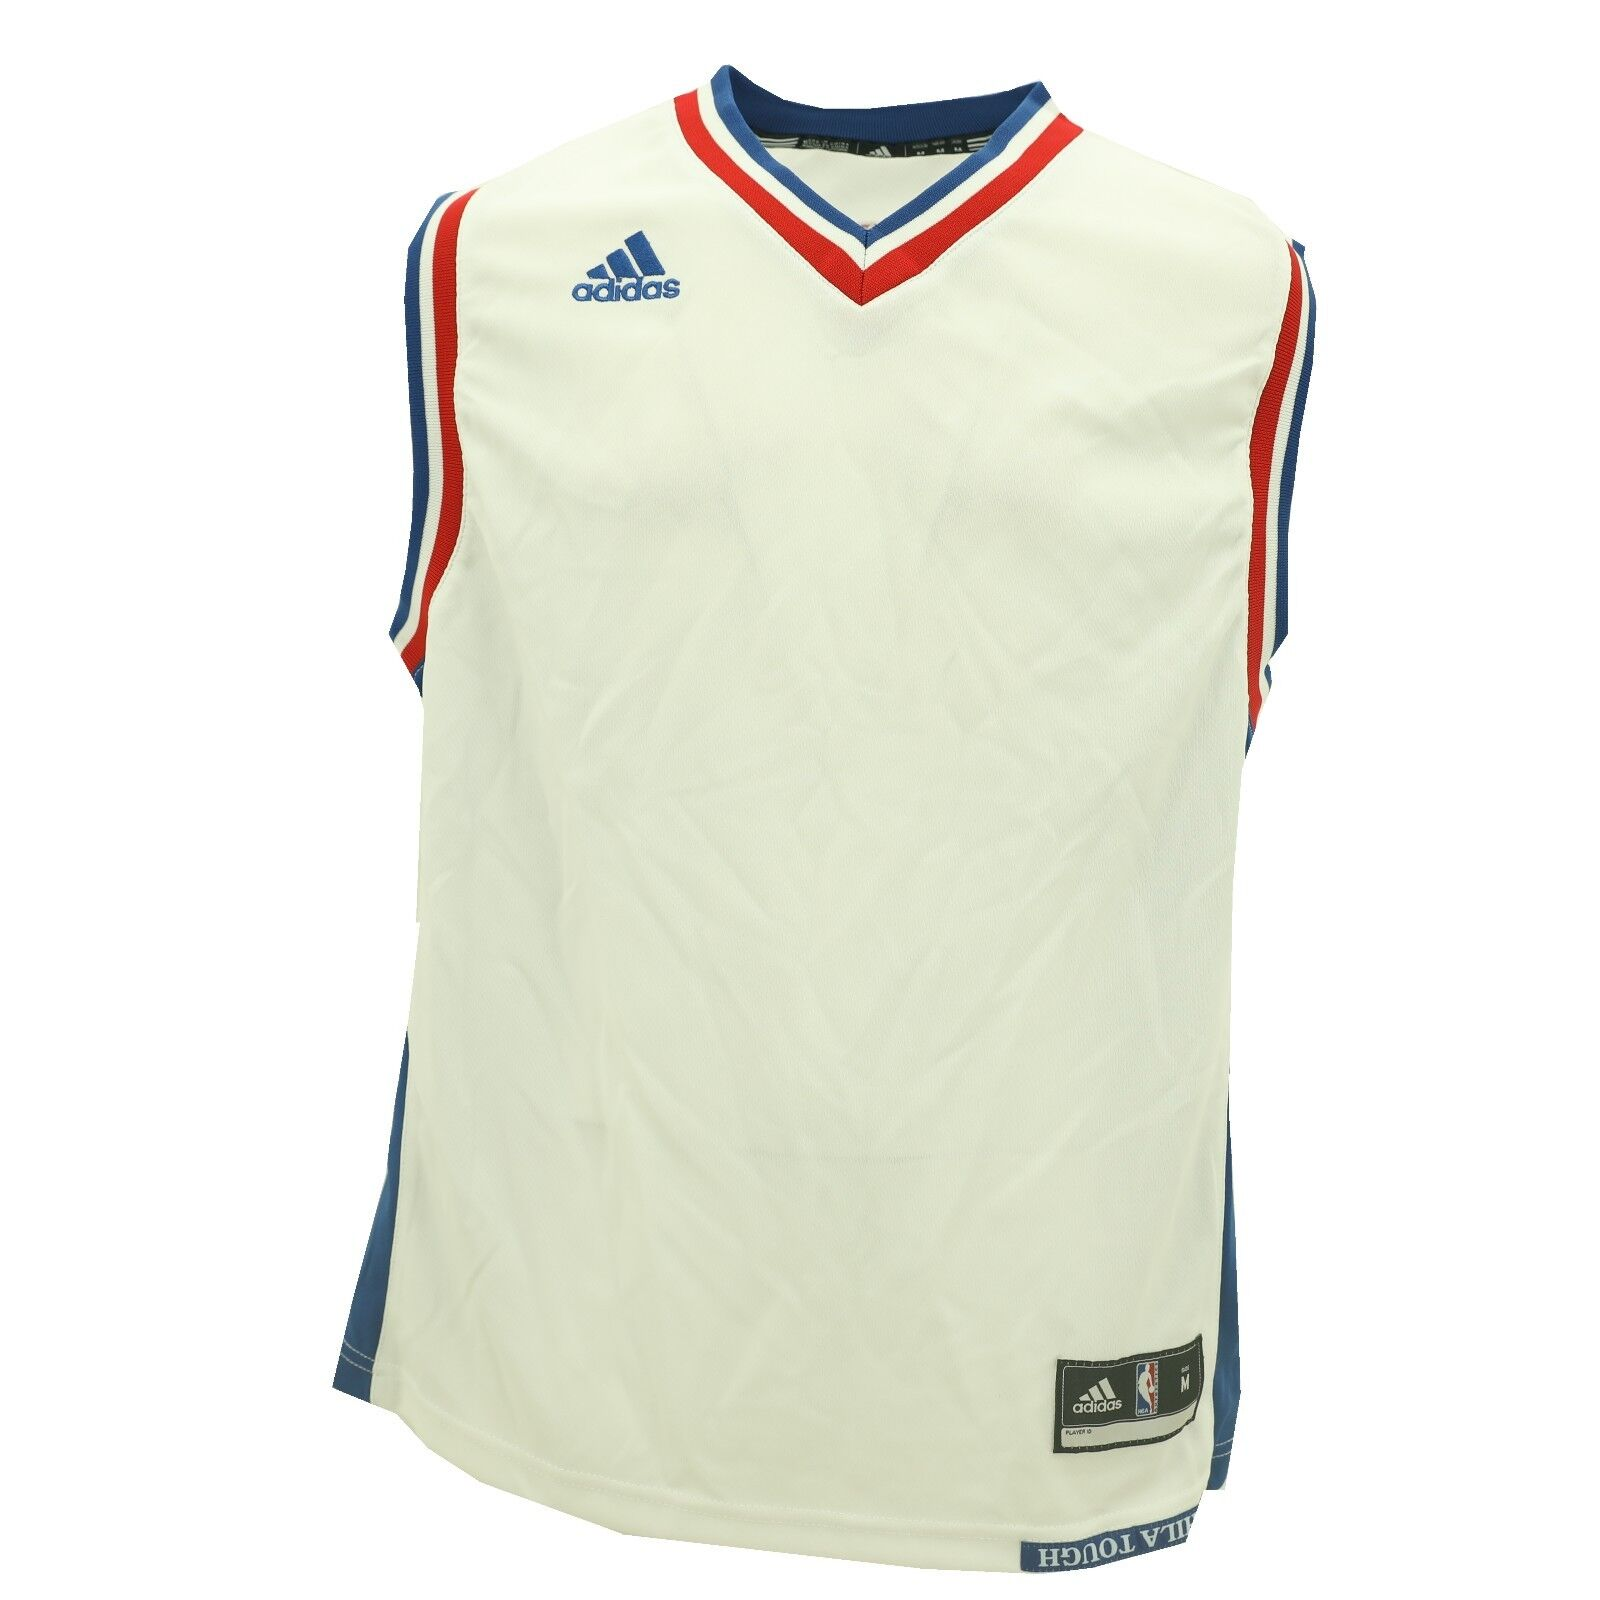 Details about New Philadelphia 76ers Kids Youth Size Adidas Official NBA  Blank Jersey New 8f907f68f